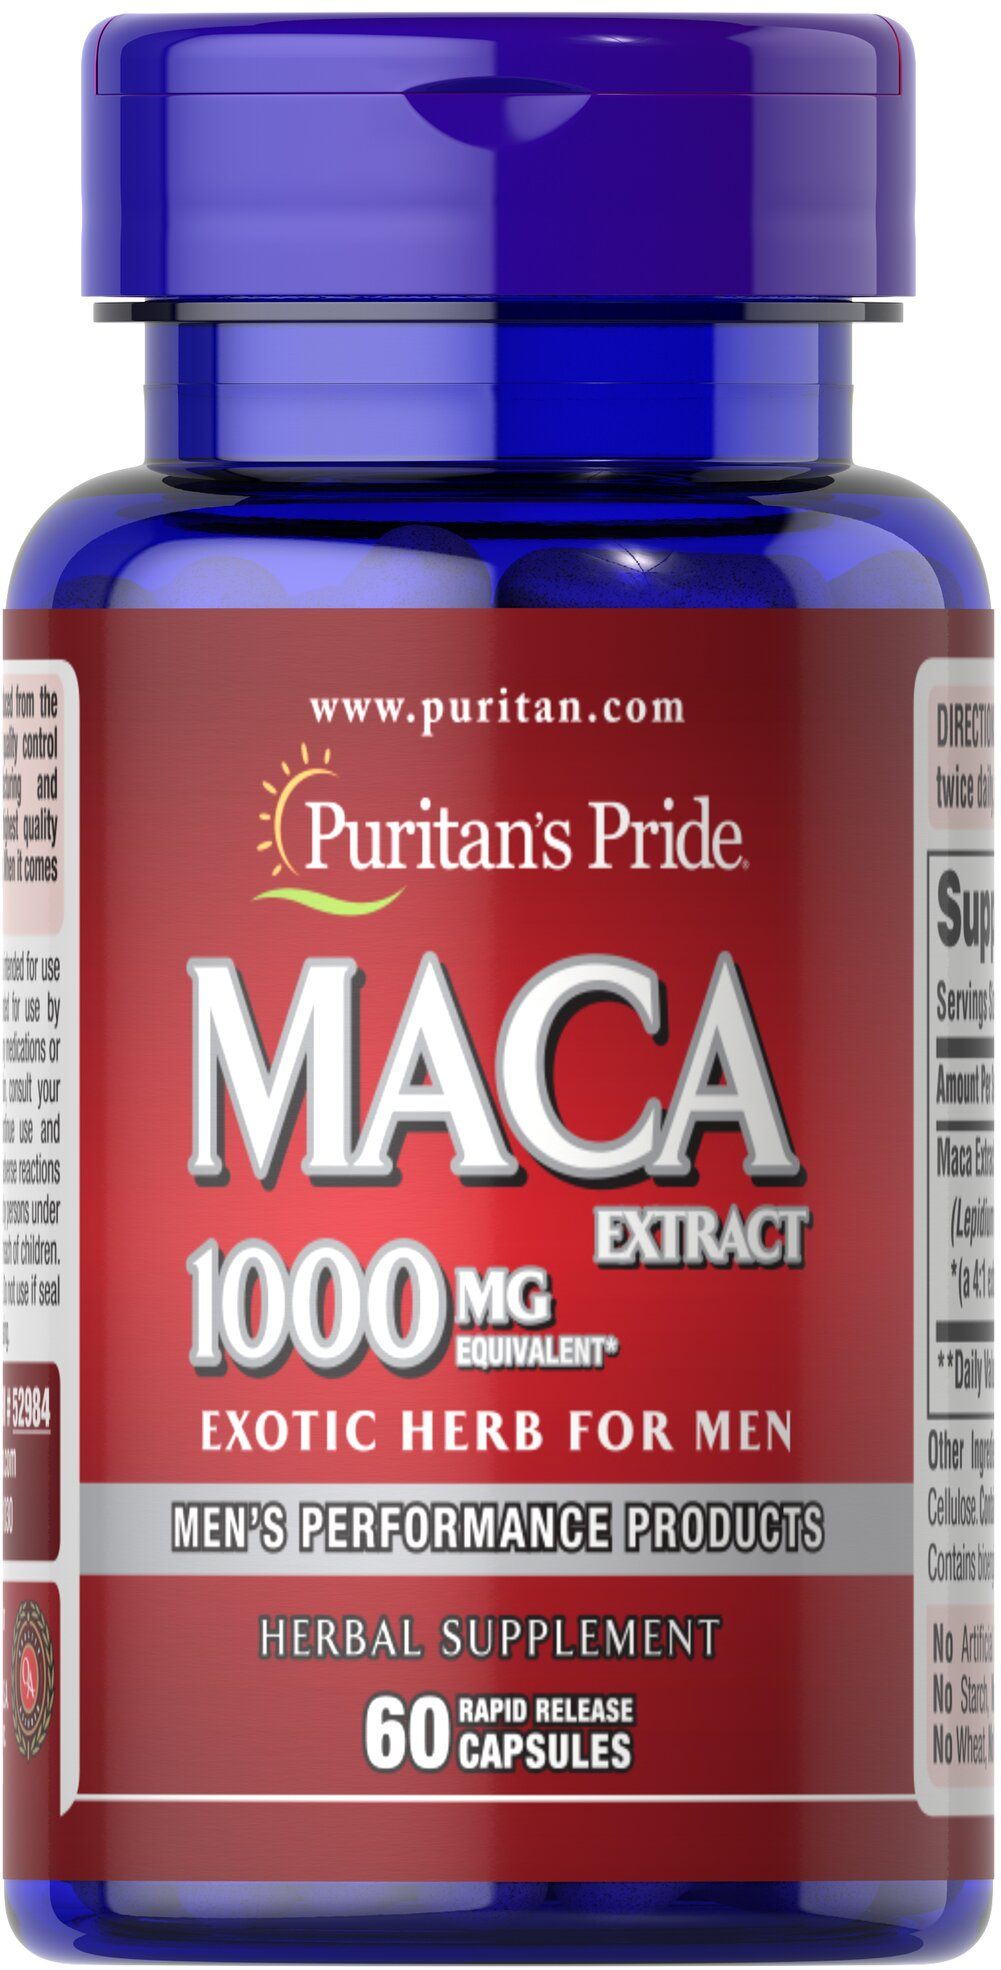 Maca 1000 mg Exotic Herb for Men  60 Capsules 1000 mg $12.99